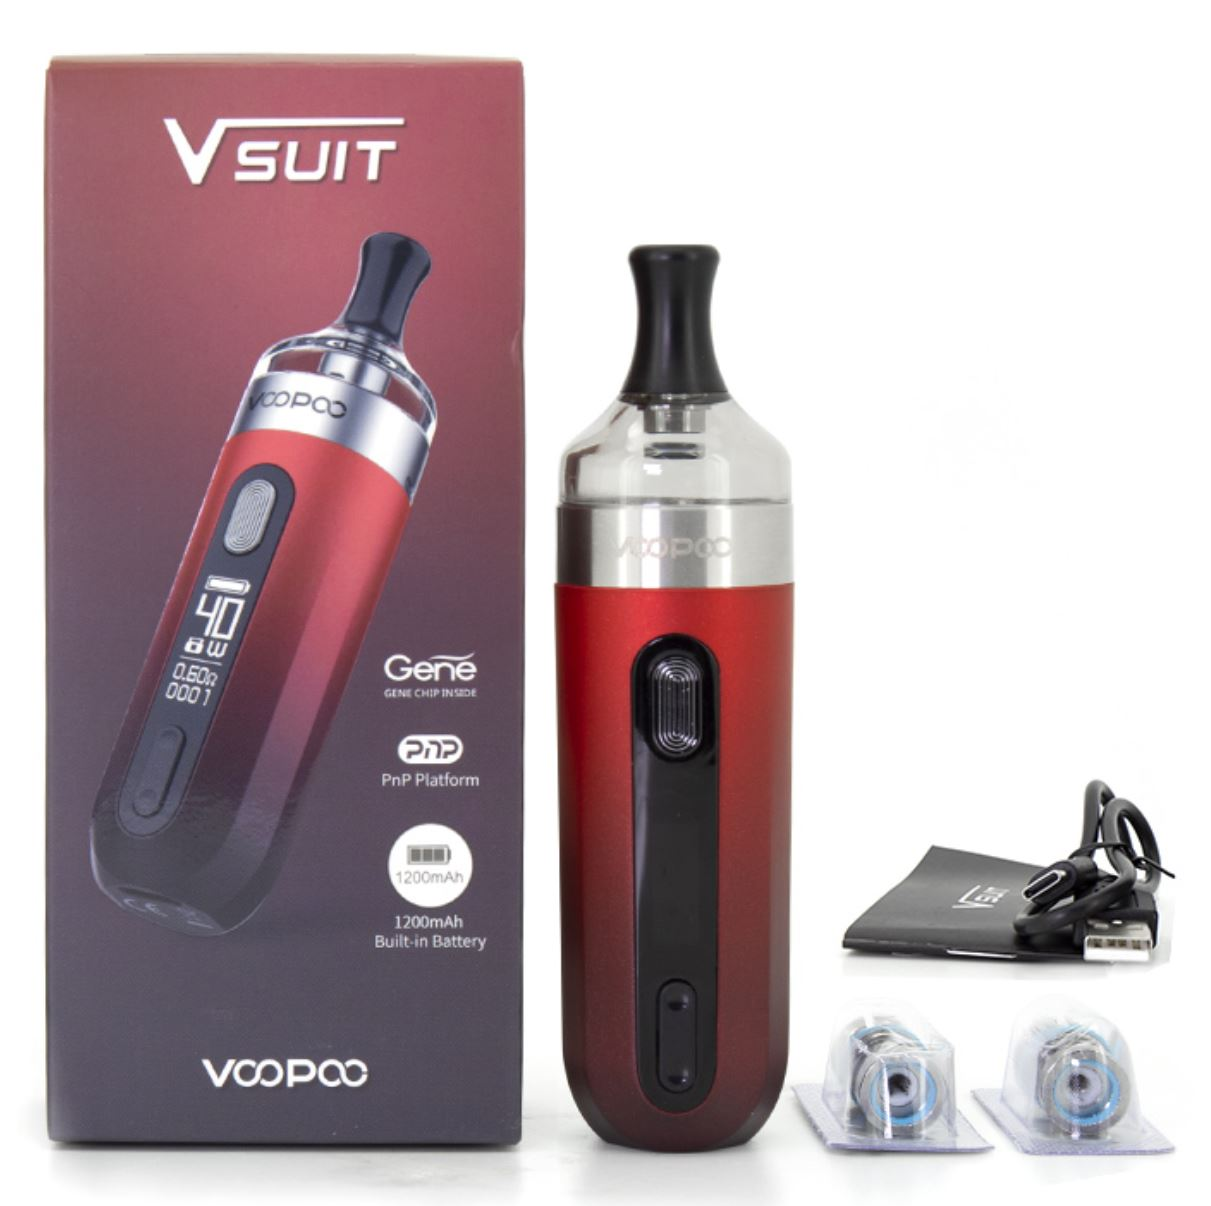 VOOPOO V.SUIT 40W elektronická cigareta 1200mAh Red 1ks